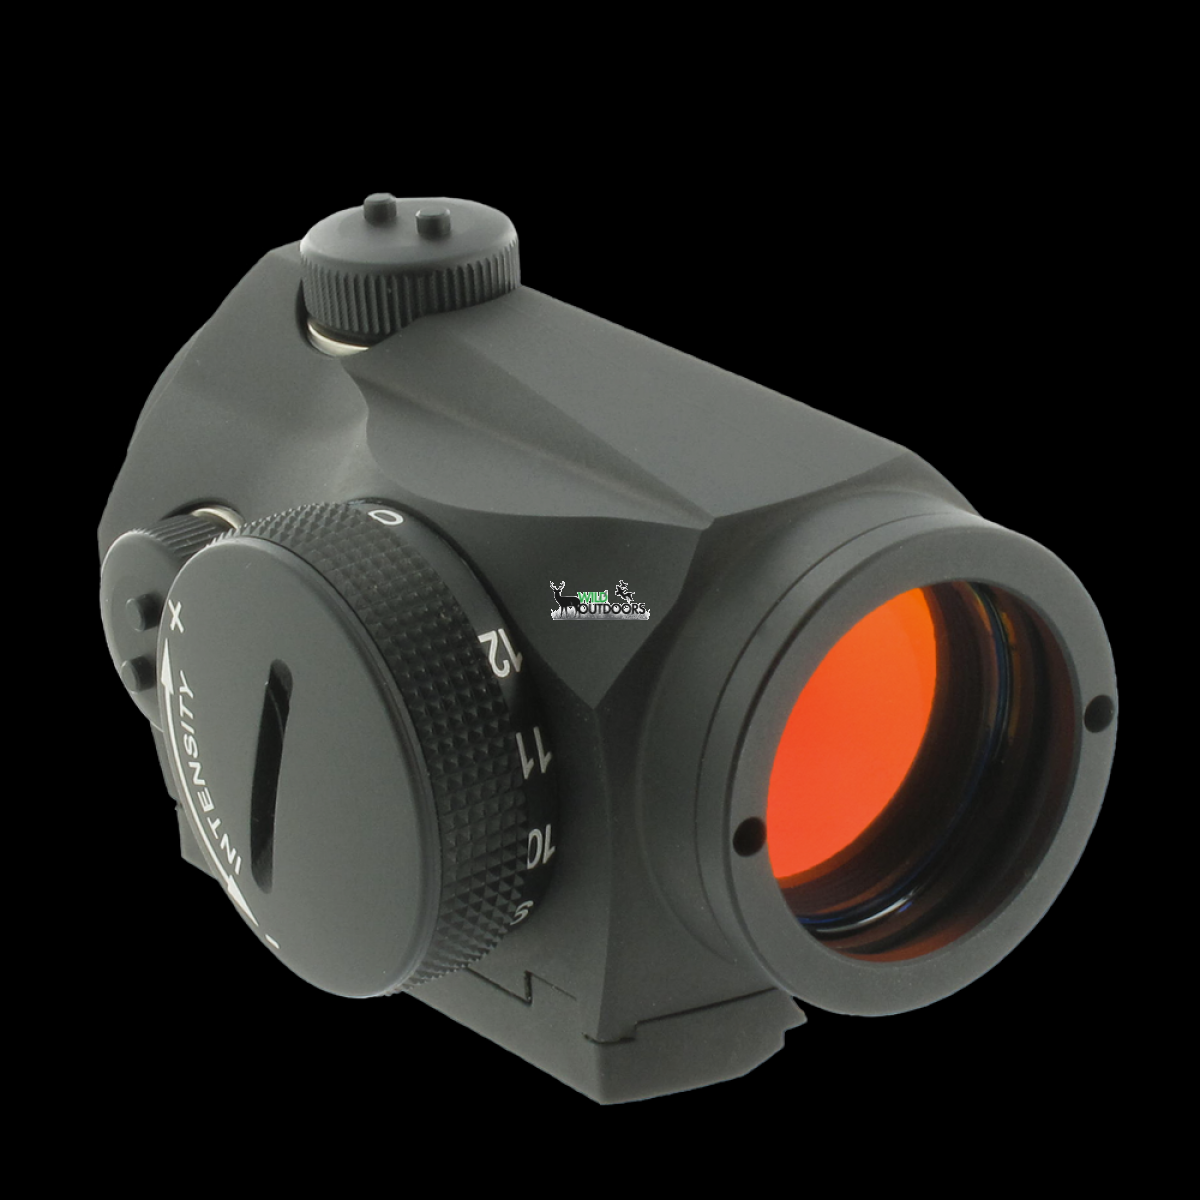 Aimpoint Micro S 1 With Shotgun Rib Mount Red Dot